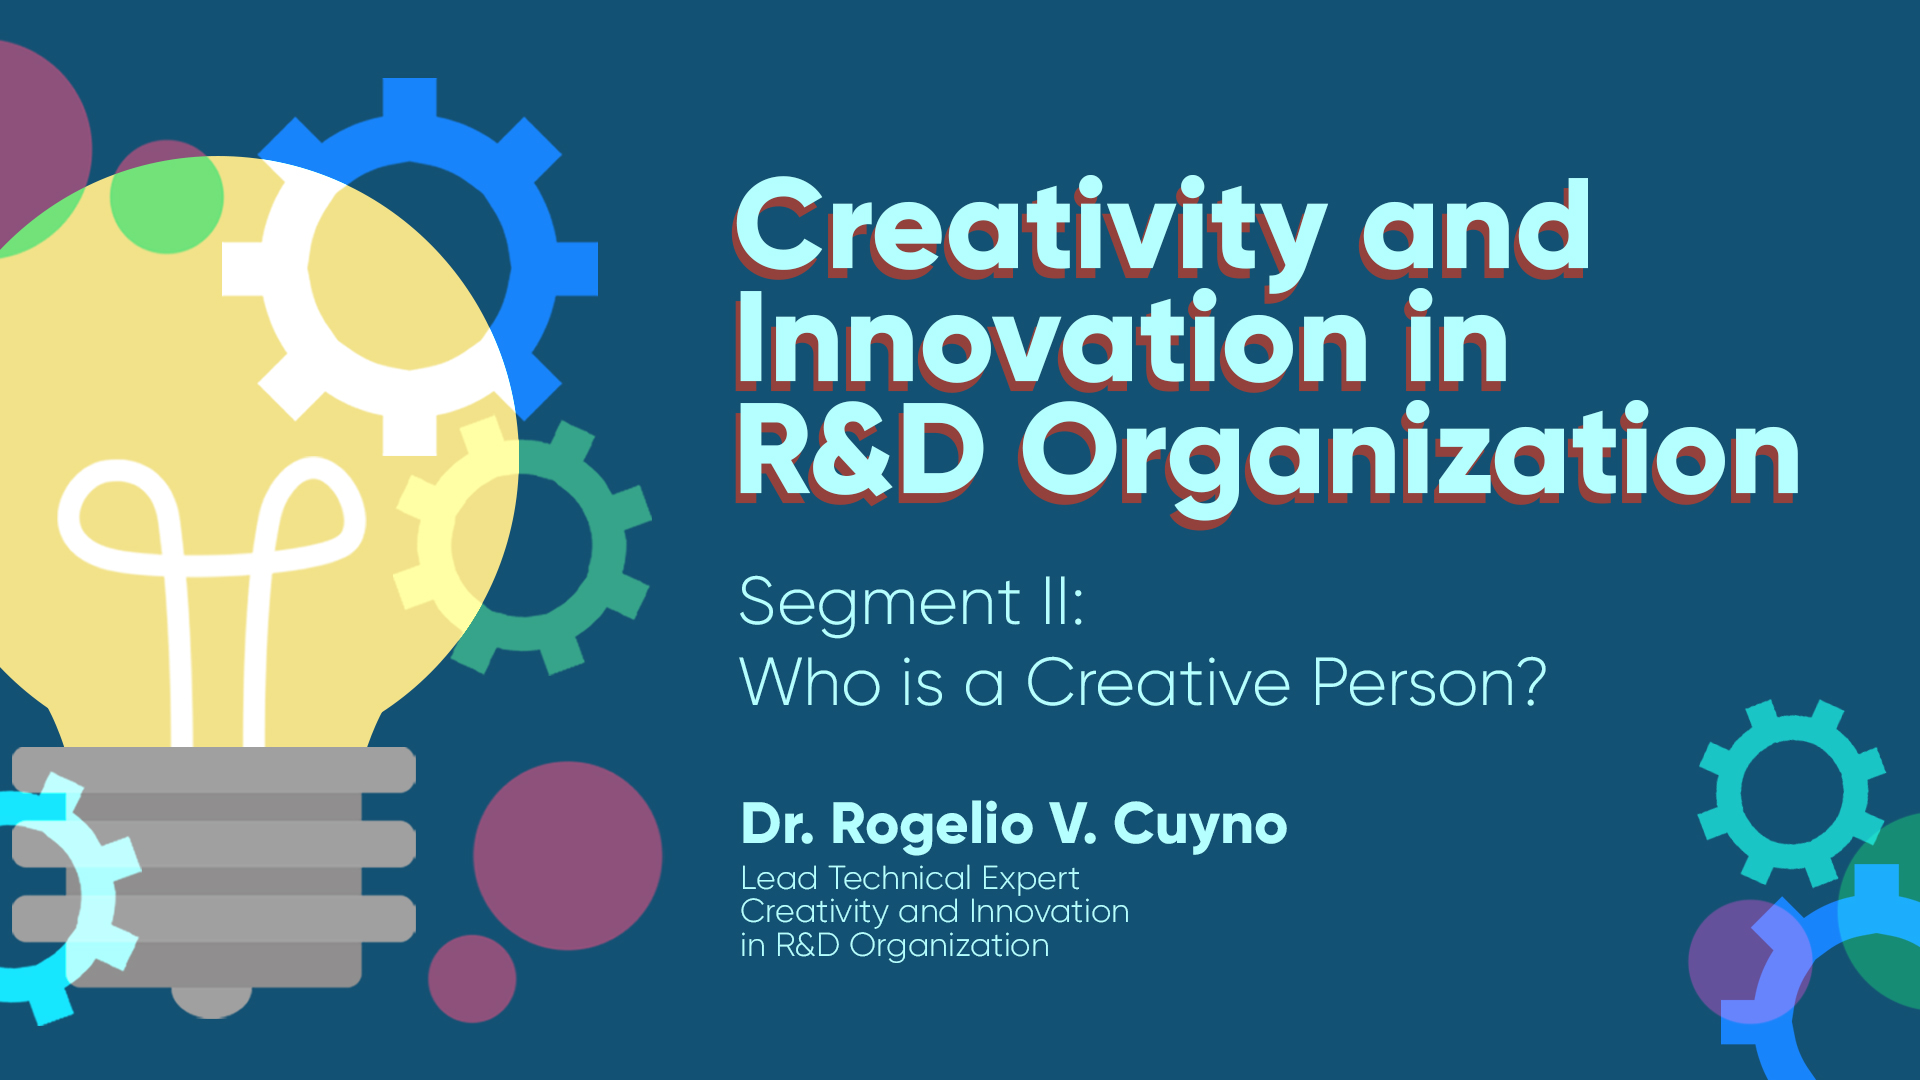 Creativity and Innovation in R&D Organization - Segment II: Who is a Creative Person?  | Dr. Rogelio V. Cuyno